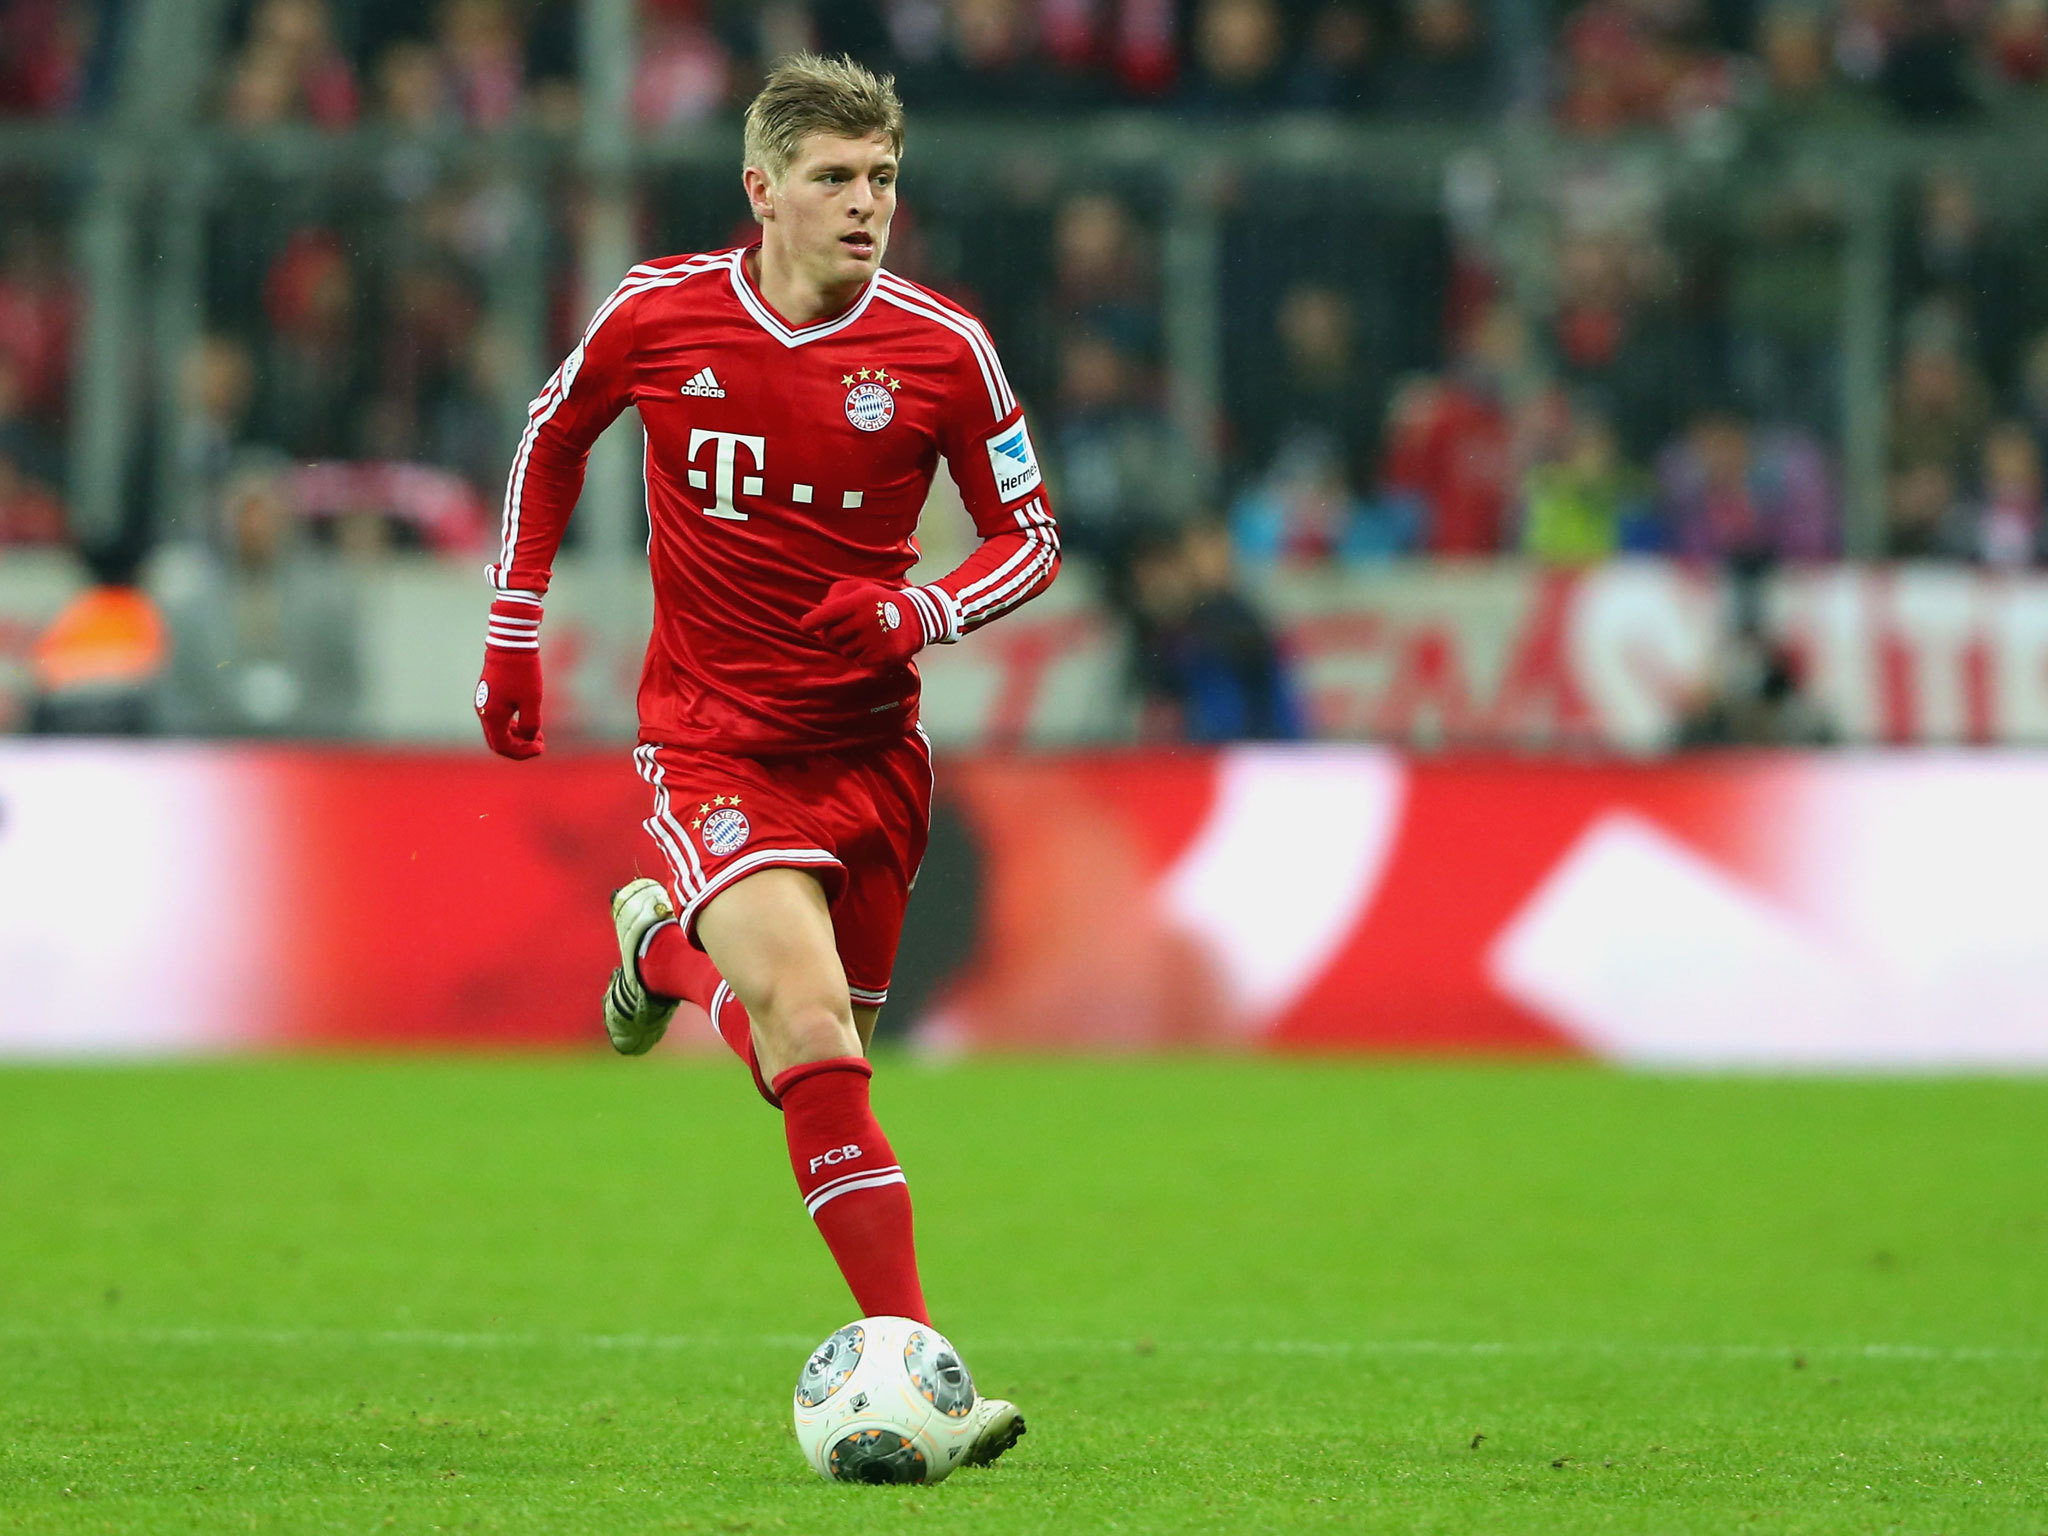 Photo free download hd desktop wallpaper backgrounds images page 9 download toni kroos football soccer player free mobile defence ball hd background desktop wallpaper photos voltagebd Choice Image